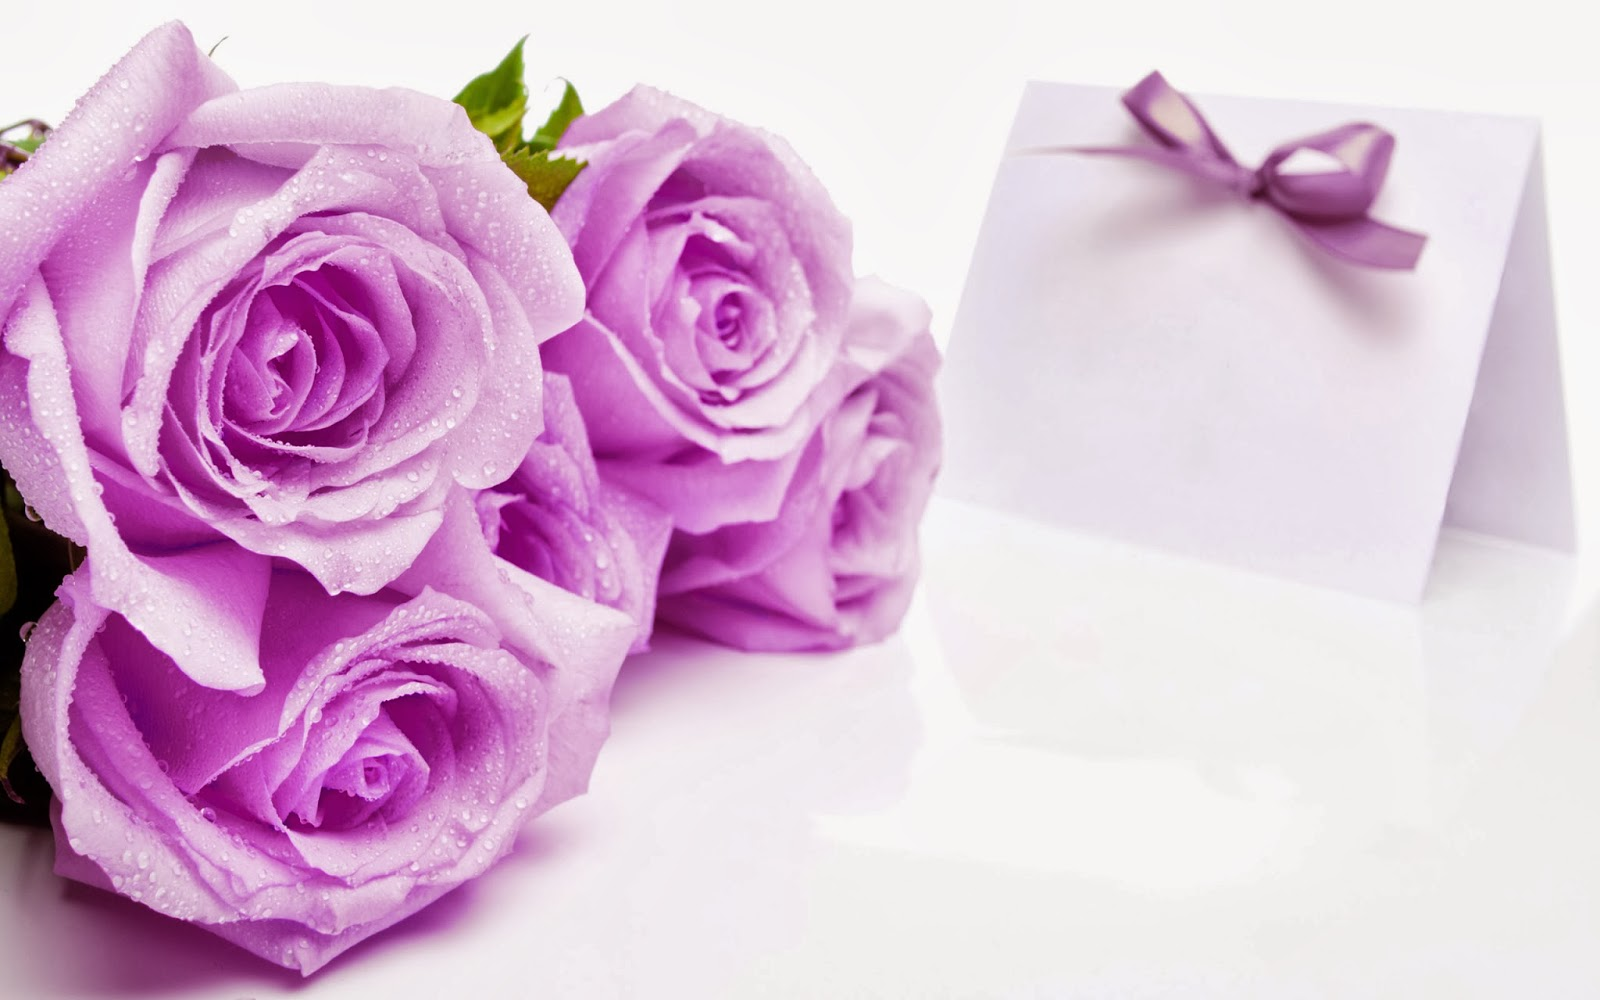 Purple flowers quotes 10 cool wallpaper hdflowerwallpaper purple flowers quotes 10 cool wallpaper voltagebd Gallery